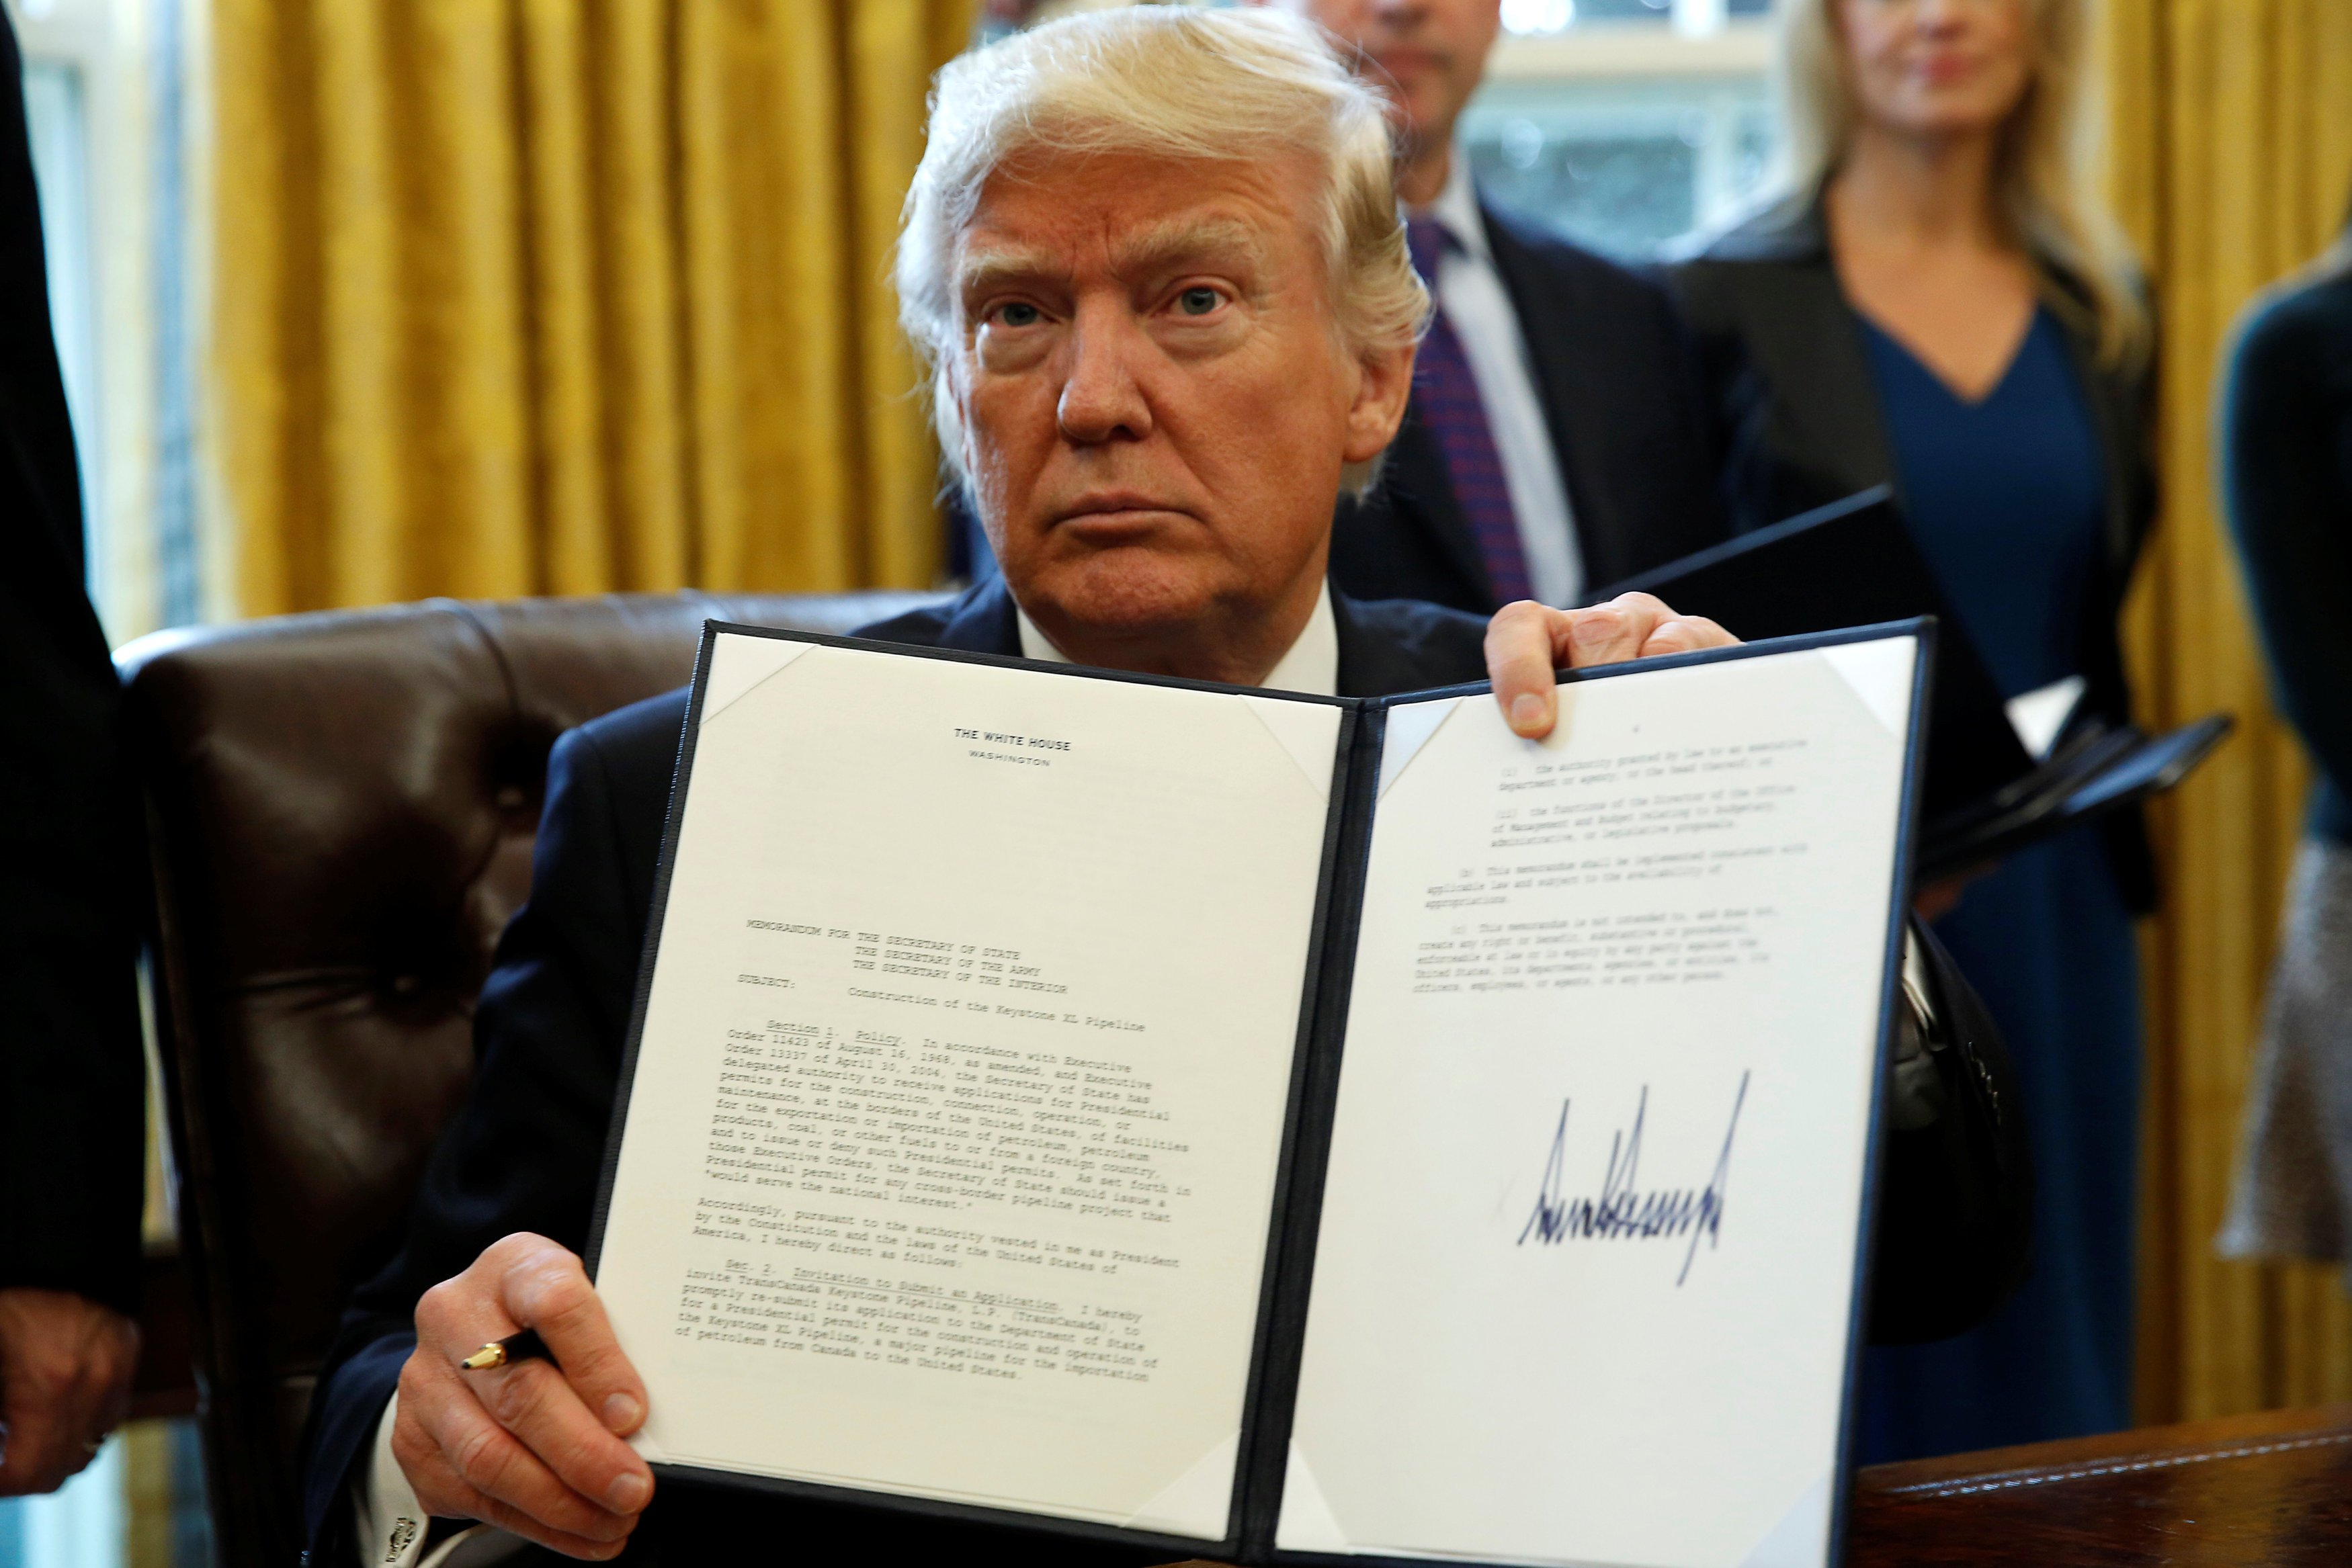 BREAKING: Trump signs executive order to protect American monuments, memorials and statues